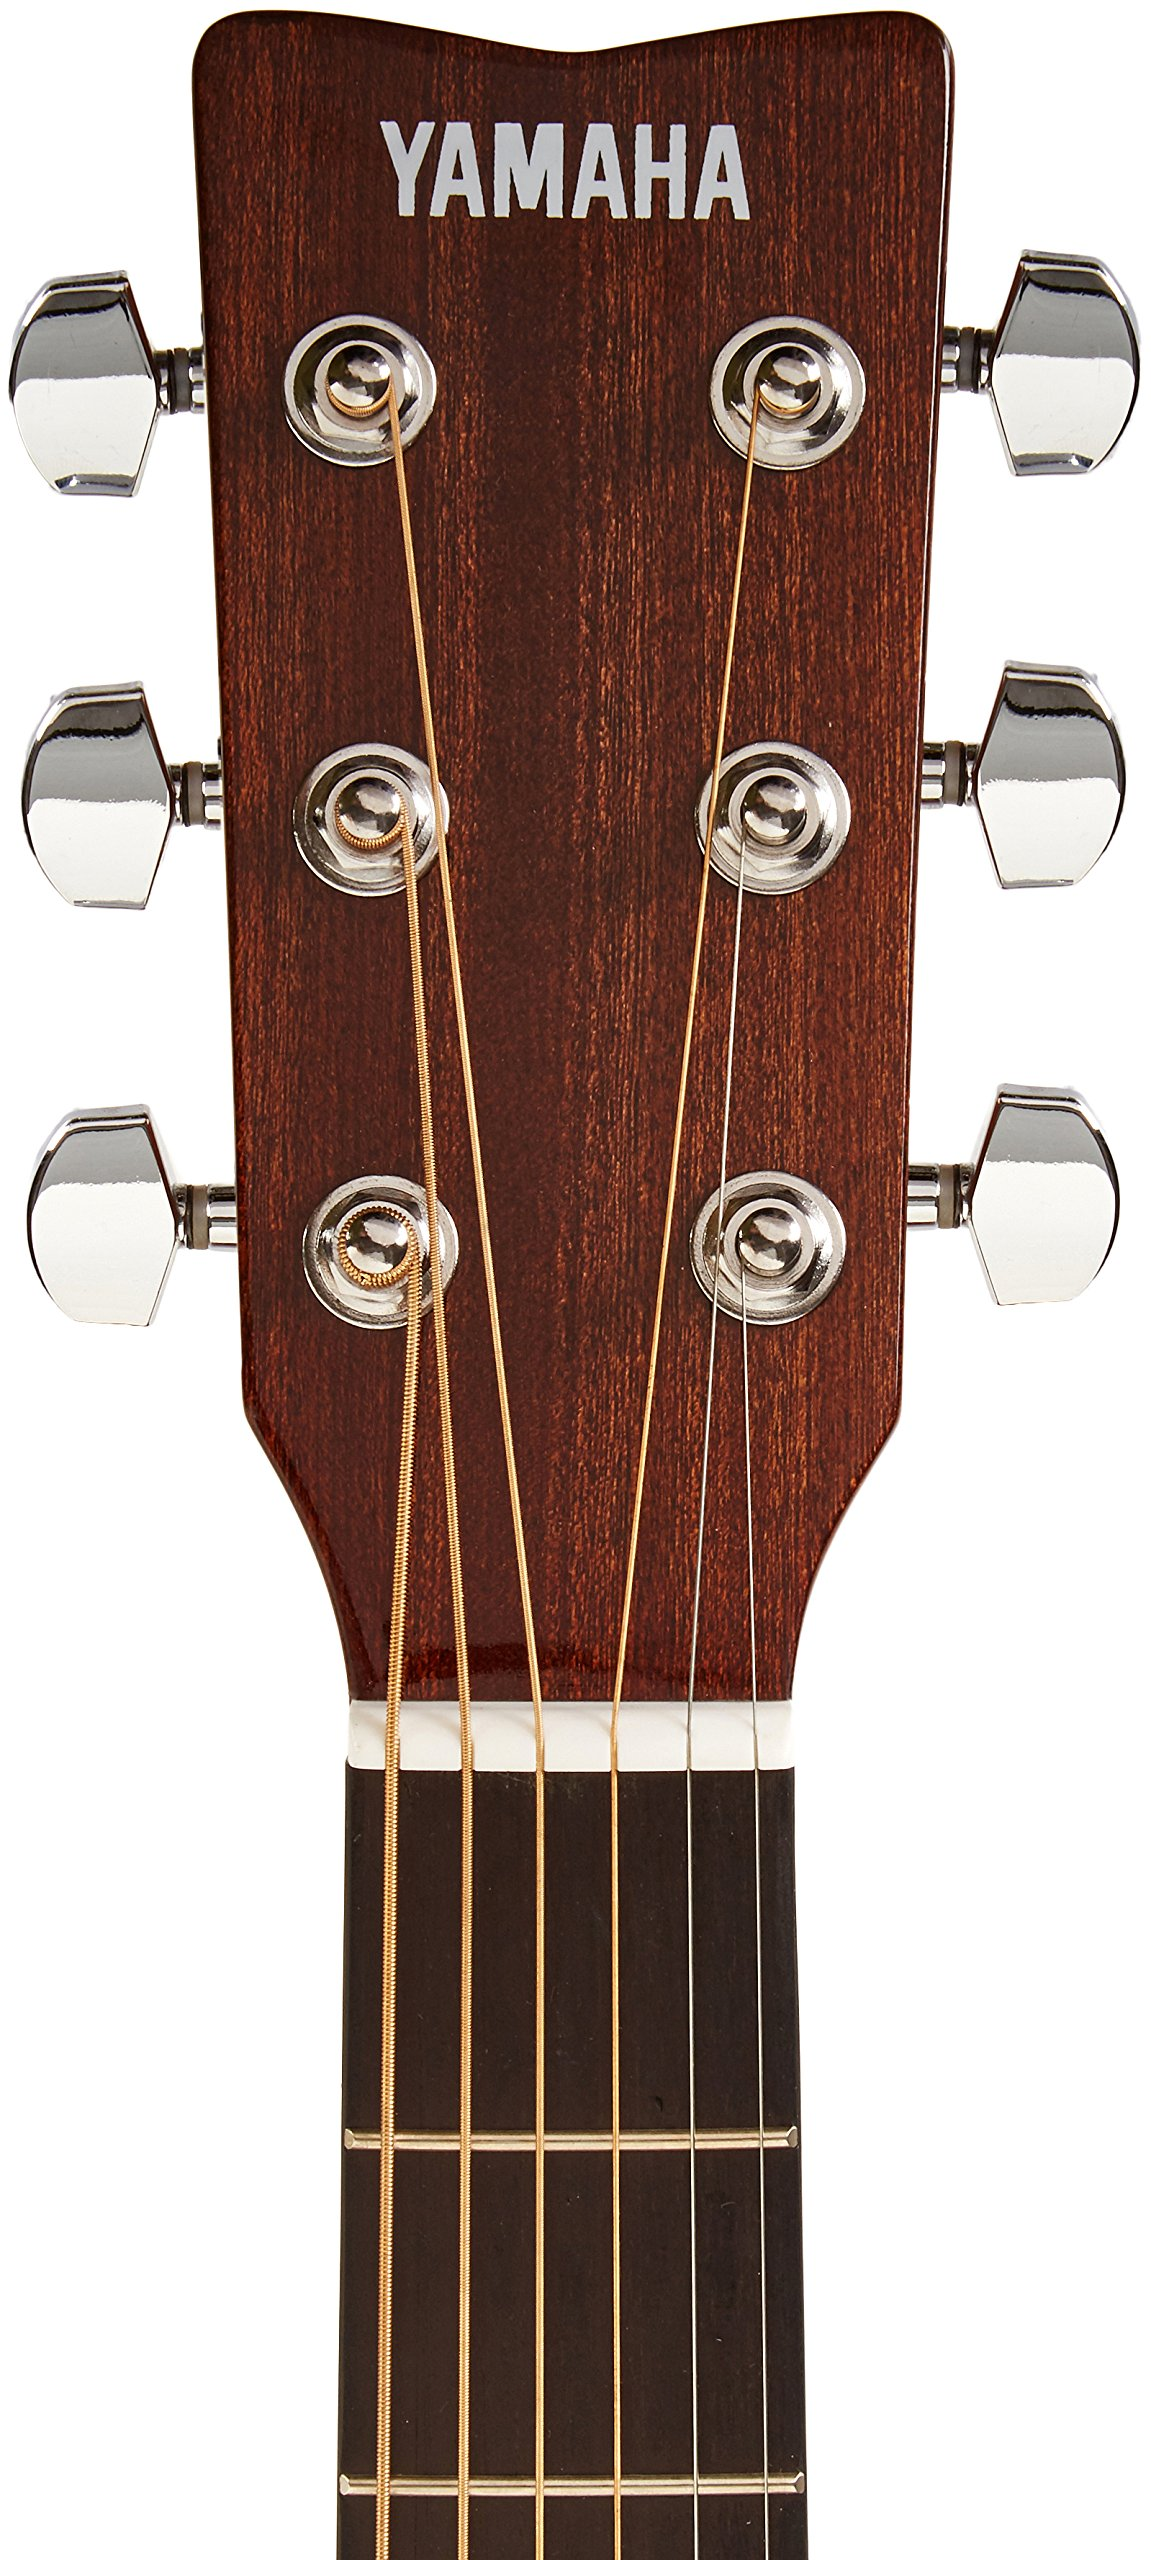 Yamaha FD01S Solid Top Acoustic Guitar (Amazon-Exclusive) by YAMAHA (Image #4)